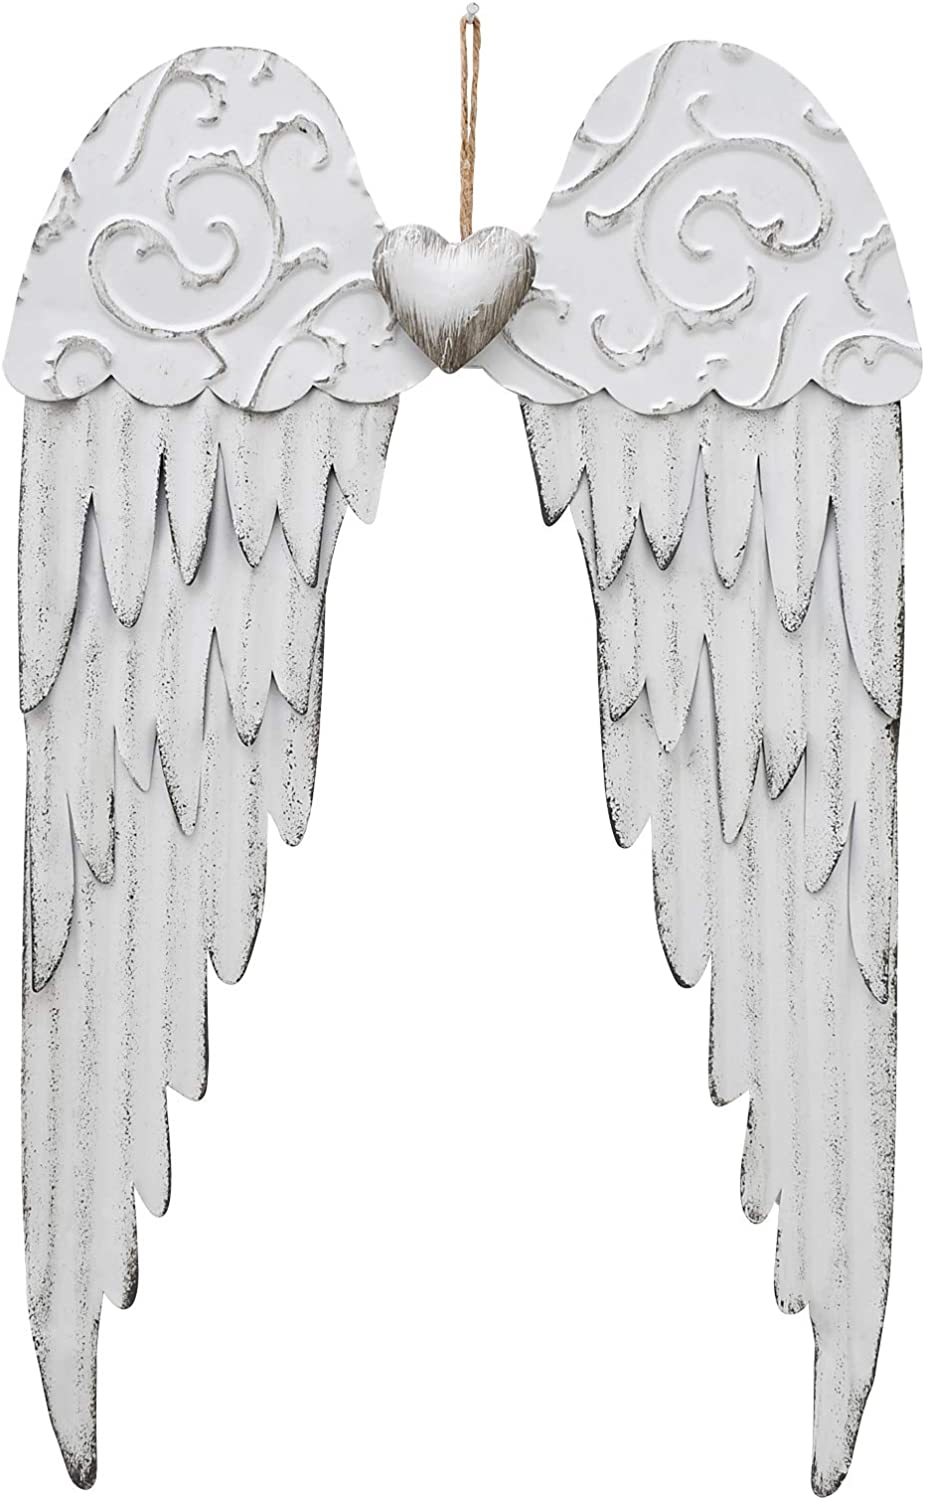 Metal Angel Wings Wall Decor Hanging Wall Art Sculpture, Heavenly Religious Hanging Wall Décor Rustic Angel Wings Art Wall Decor (1)